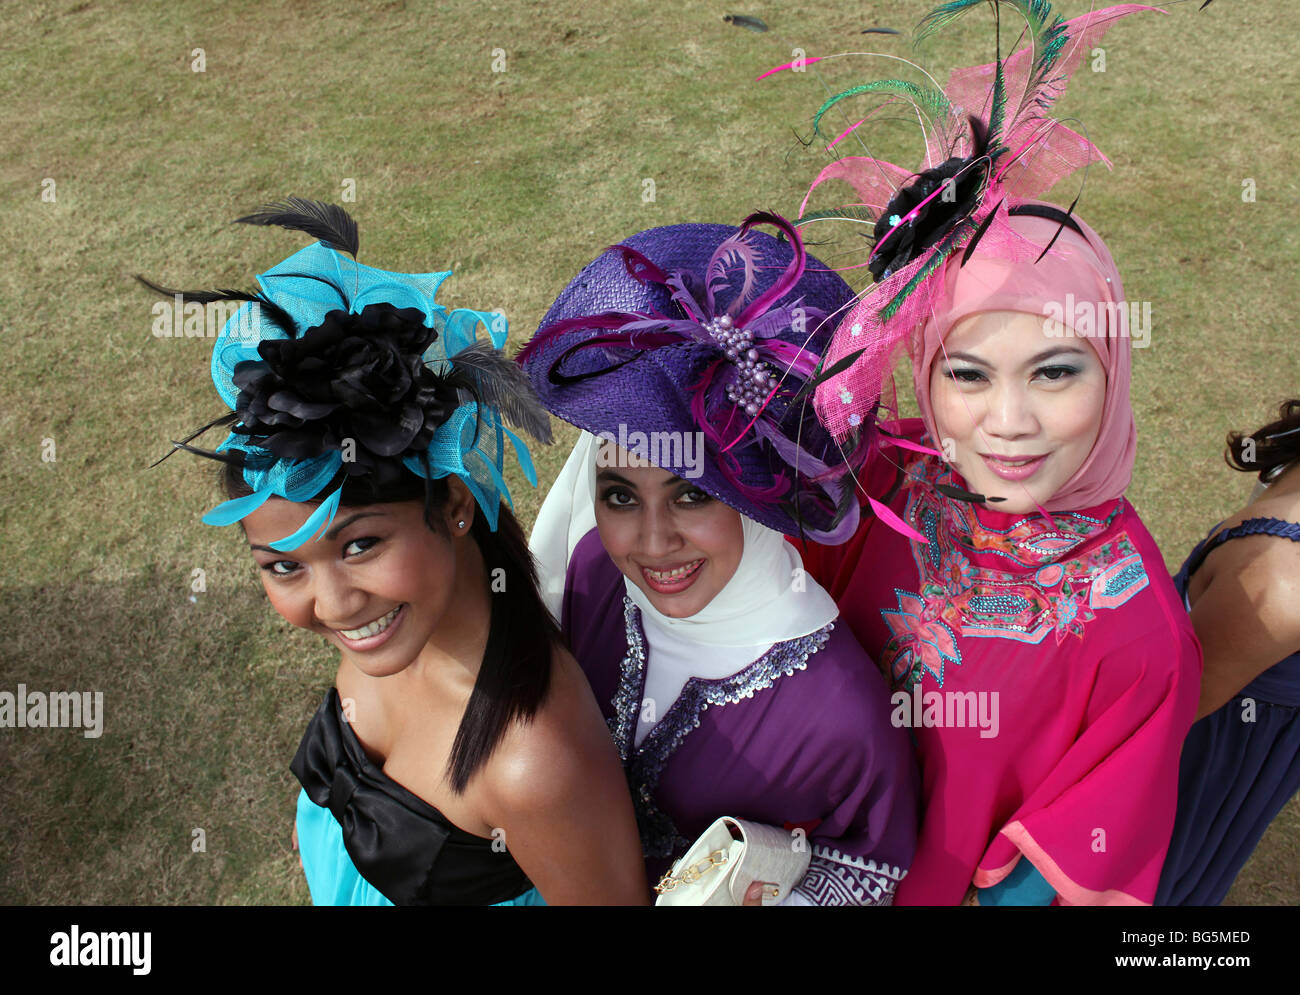 Elegantly dressed women wearing hats during a horse race, Dubai, United Arab Emirates - Stock Image